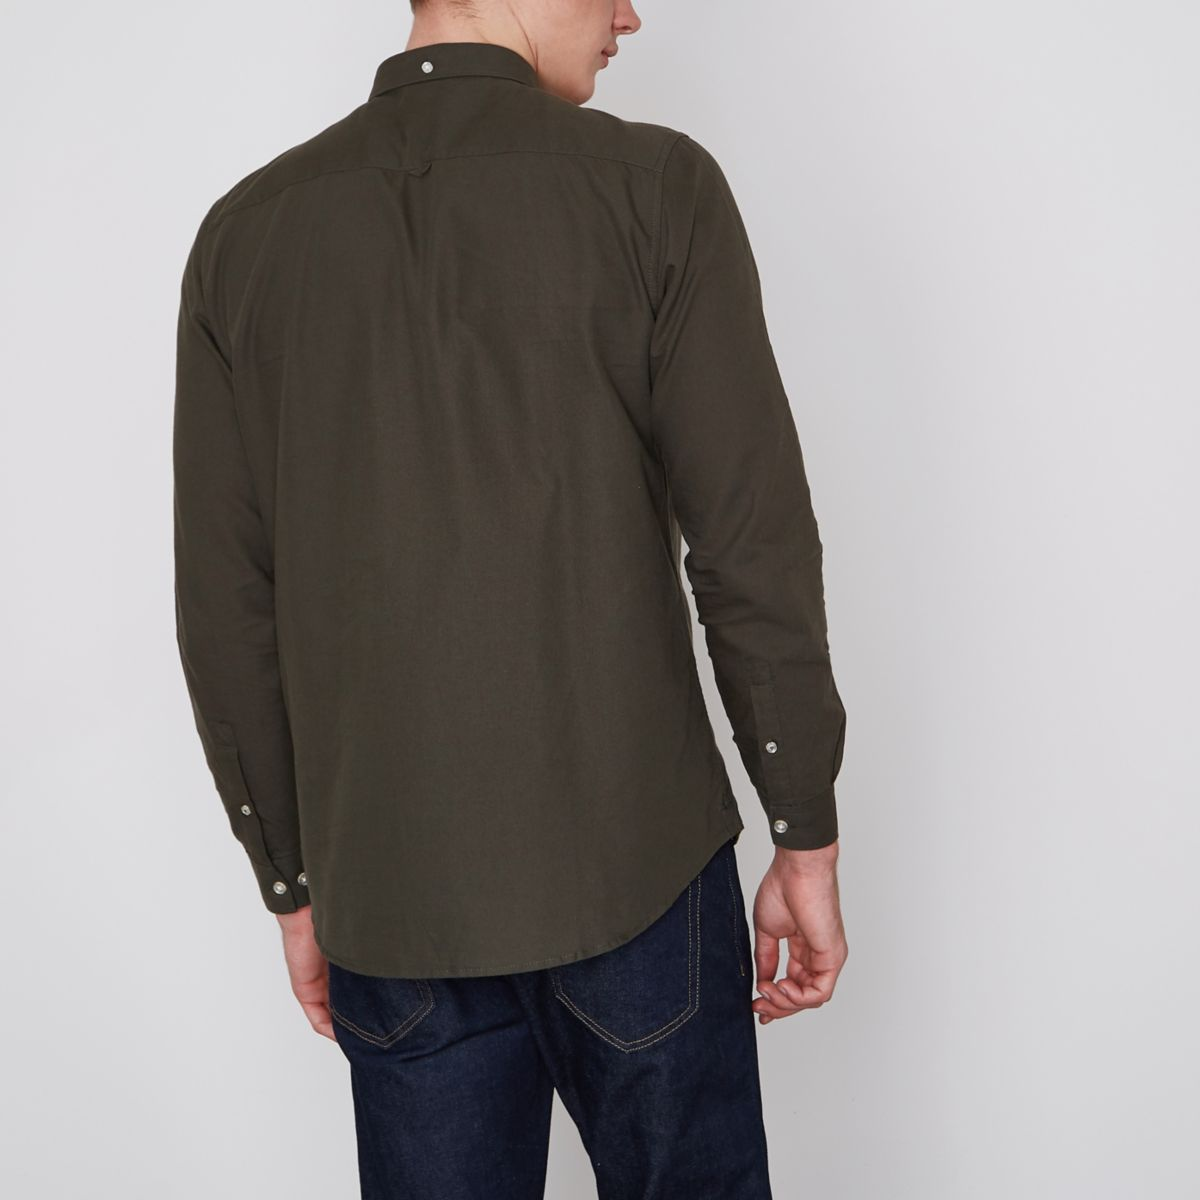 shirt Khaki Oxford long green sleeve wUItnqHCU